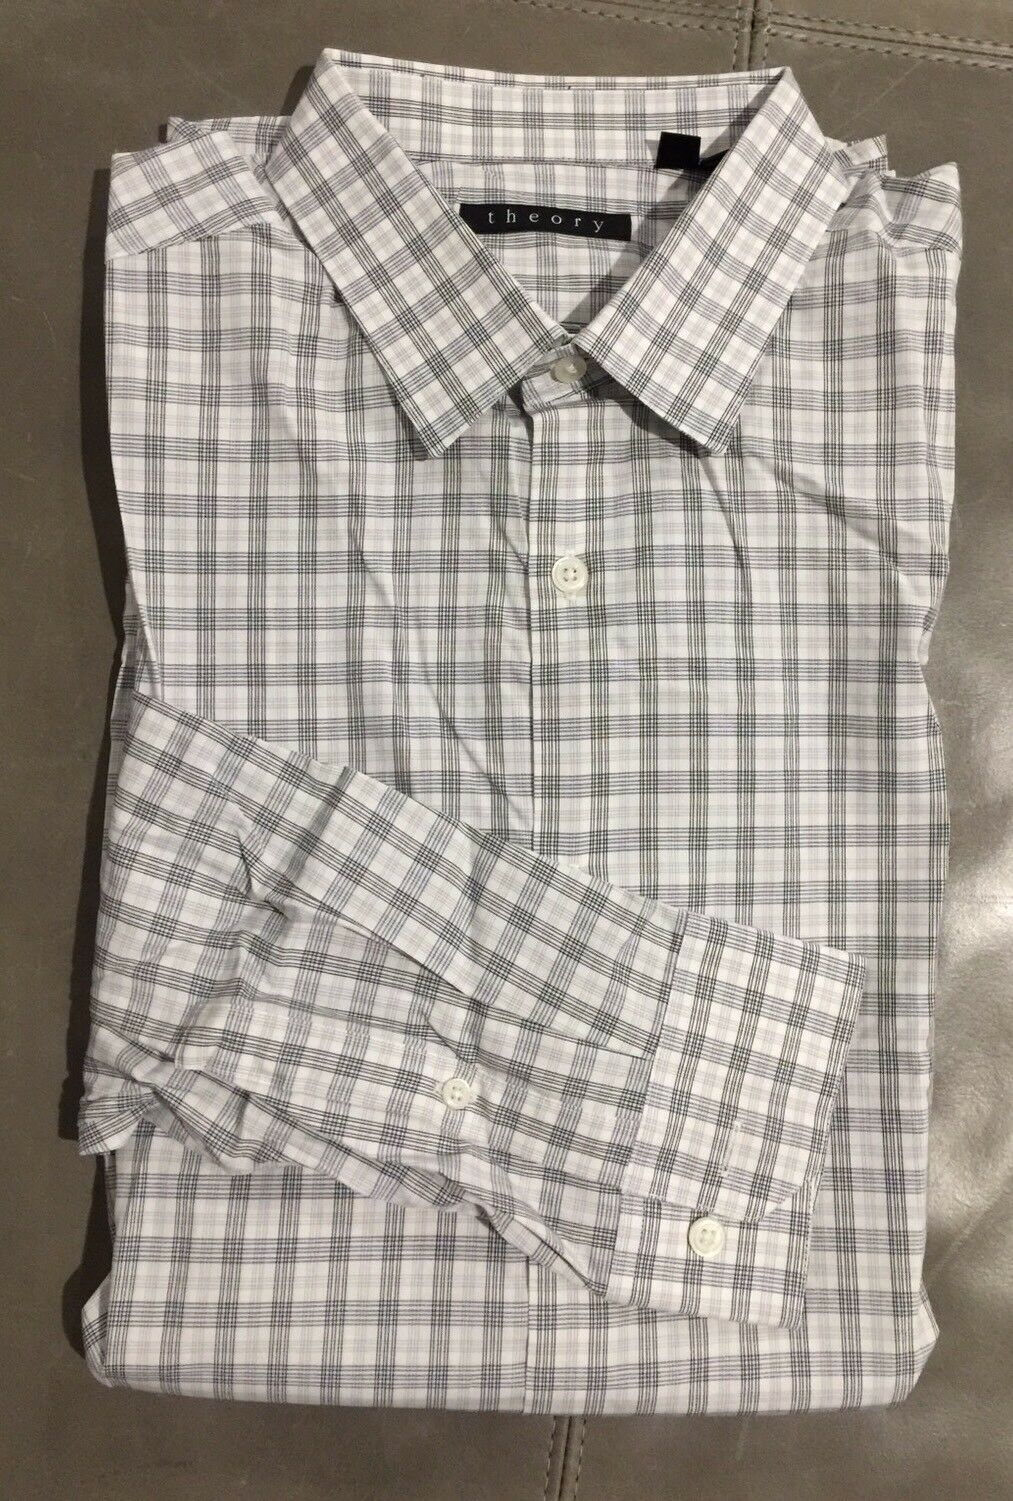 NWOT Theory Dover Boundary Plaid Stretch Cotton Dress Shirt Large 41 16 34  195